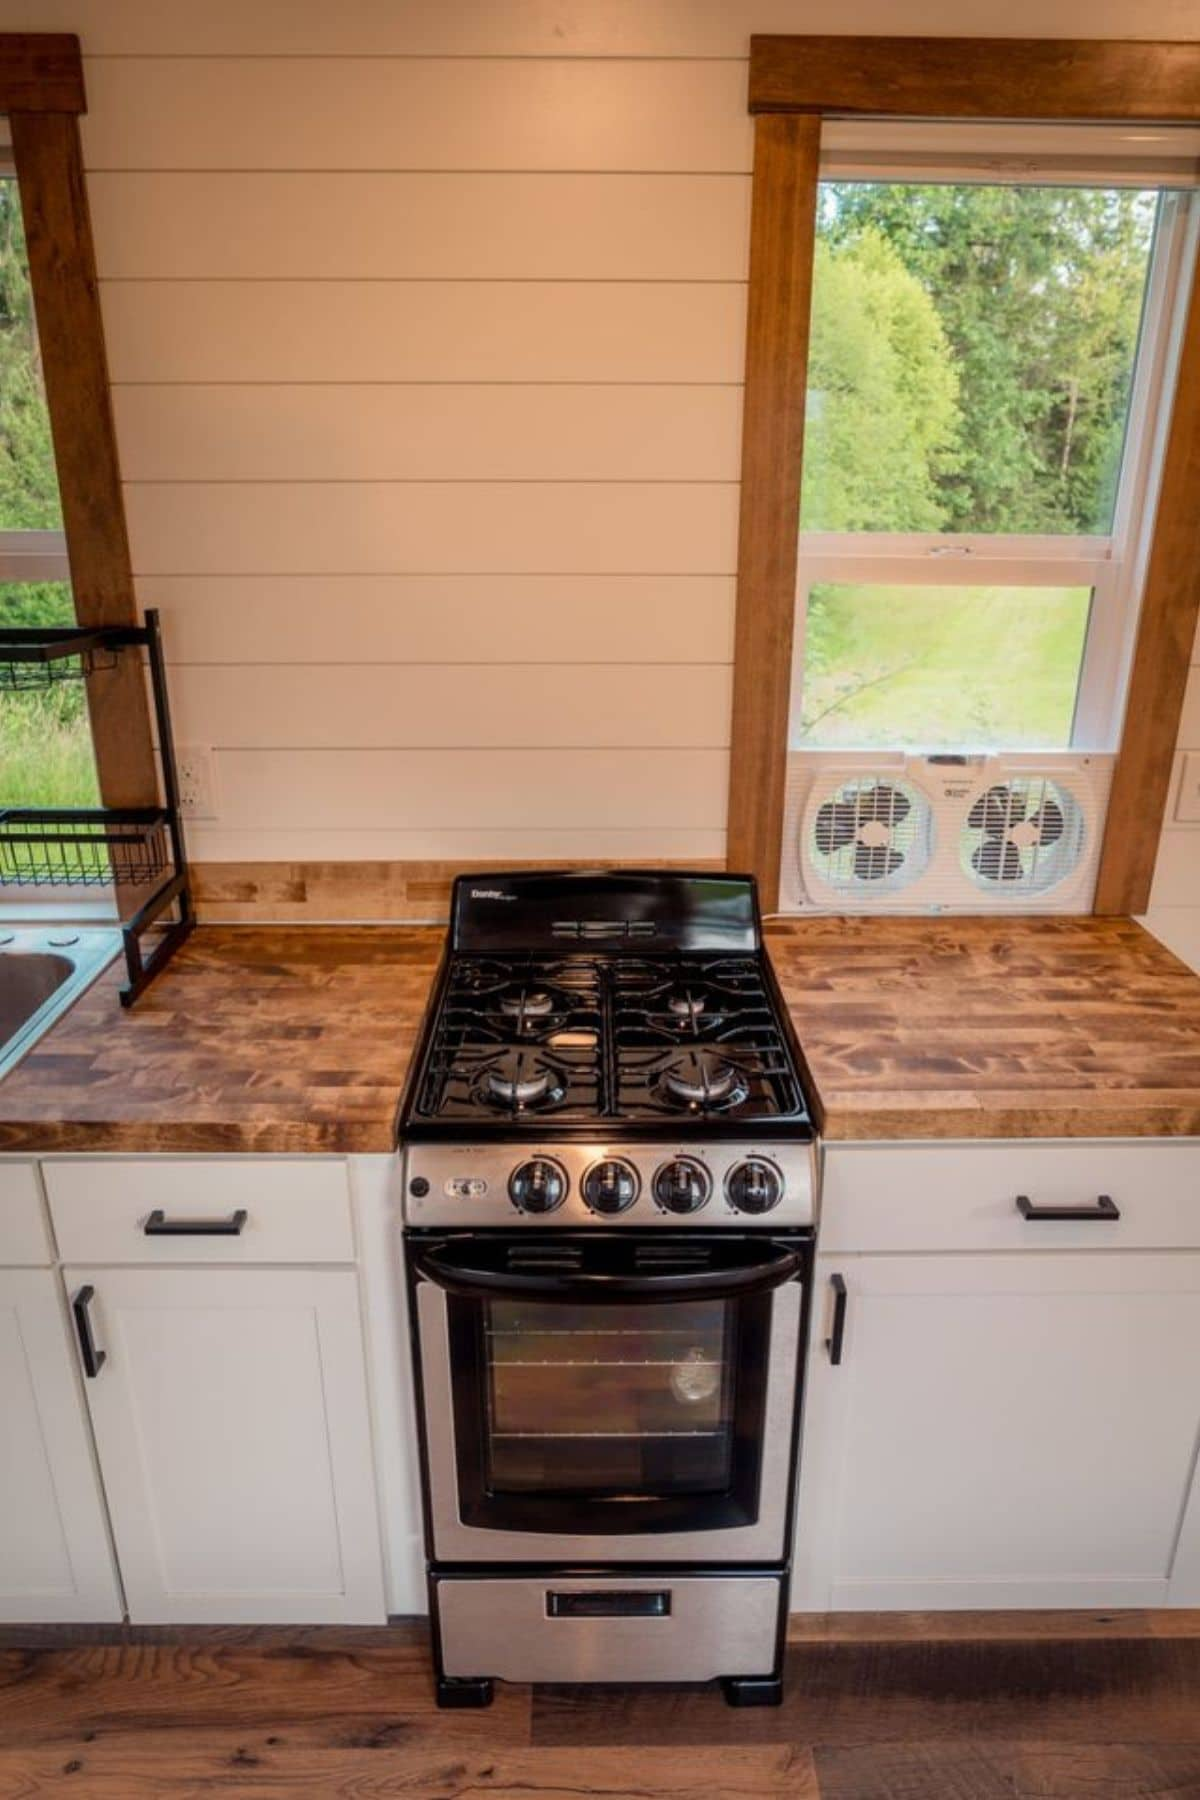 4 burner gas stove inside white cabinets with butcher block countertops